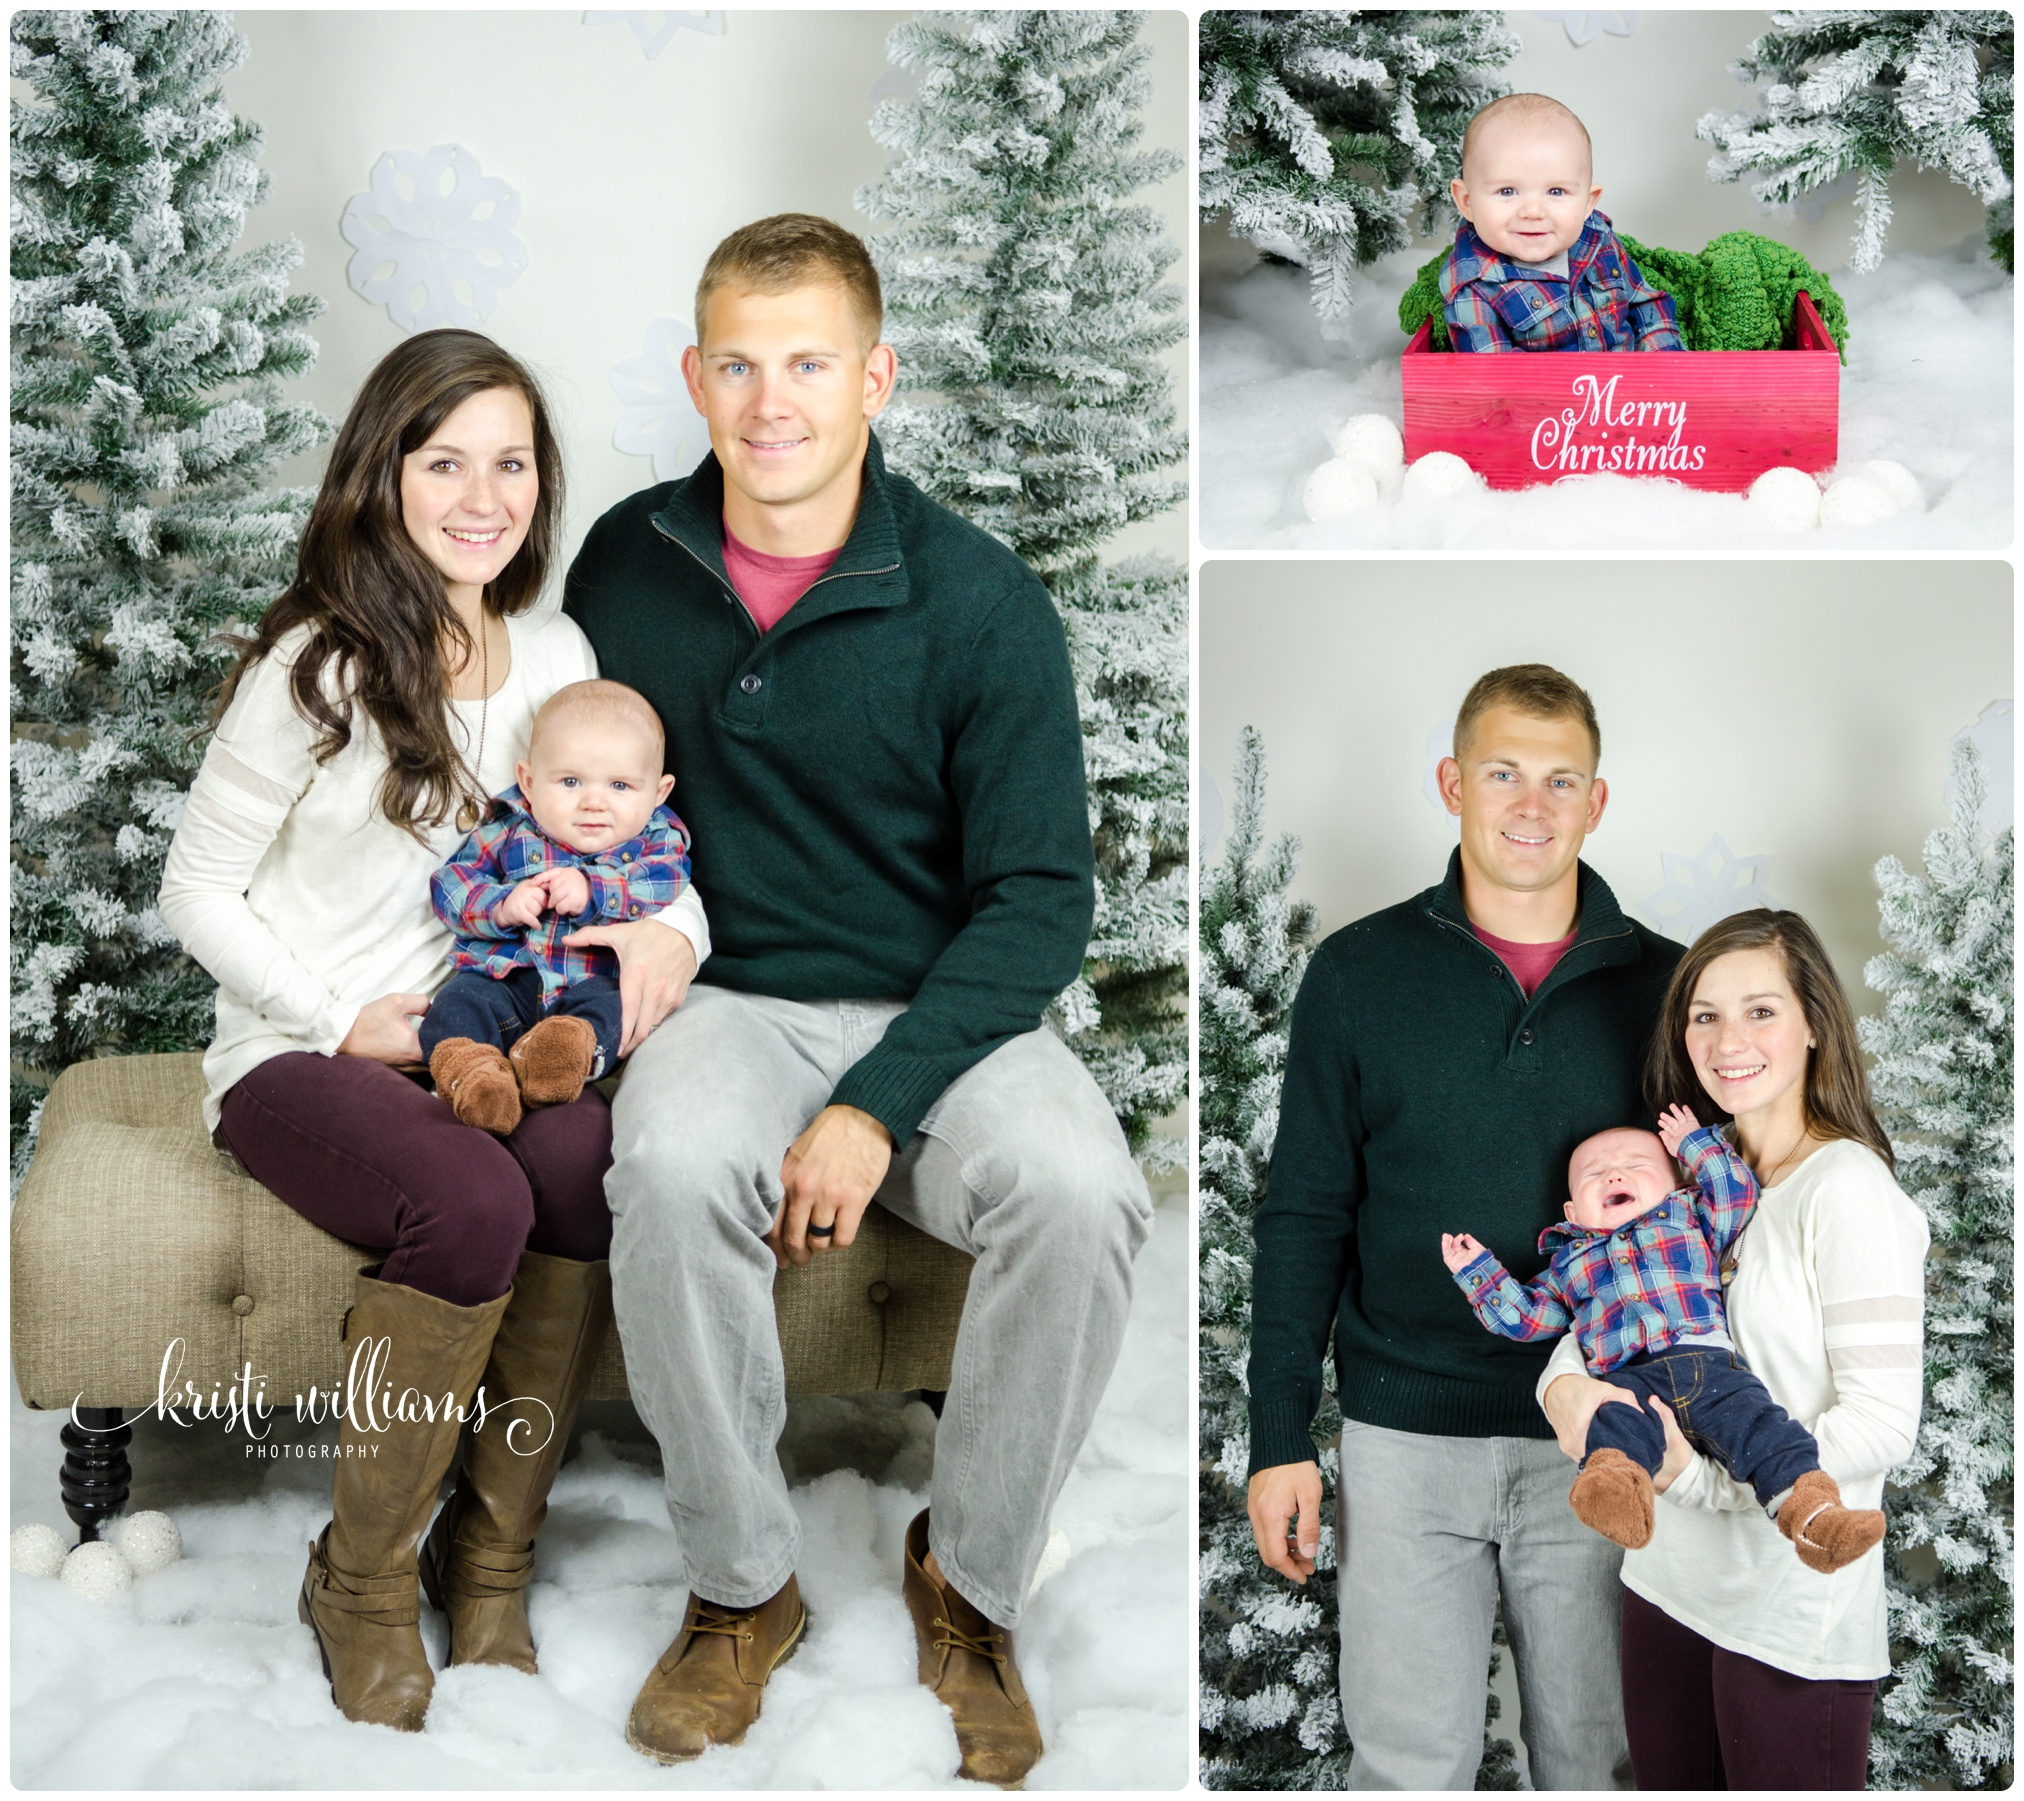 christmas family photography colorado springs co kristi williams photography